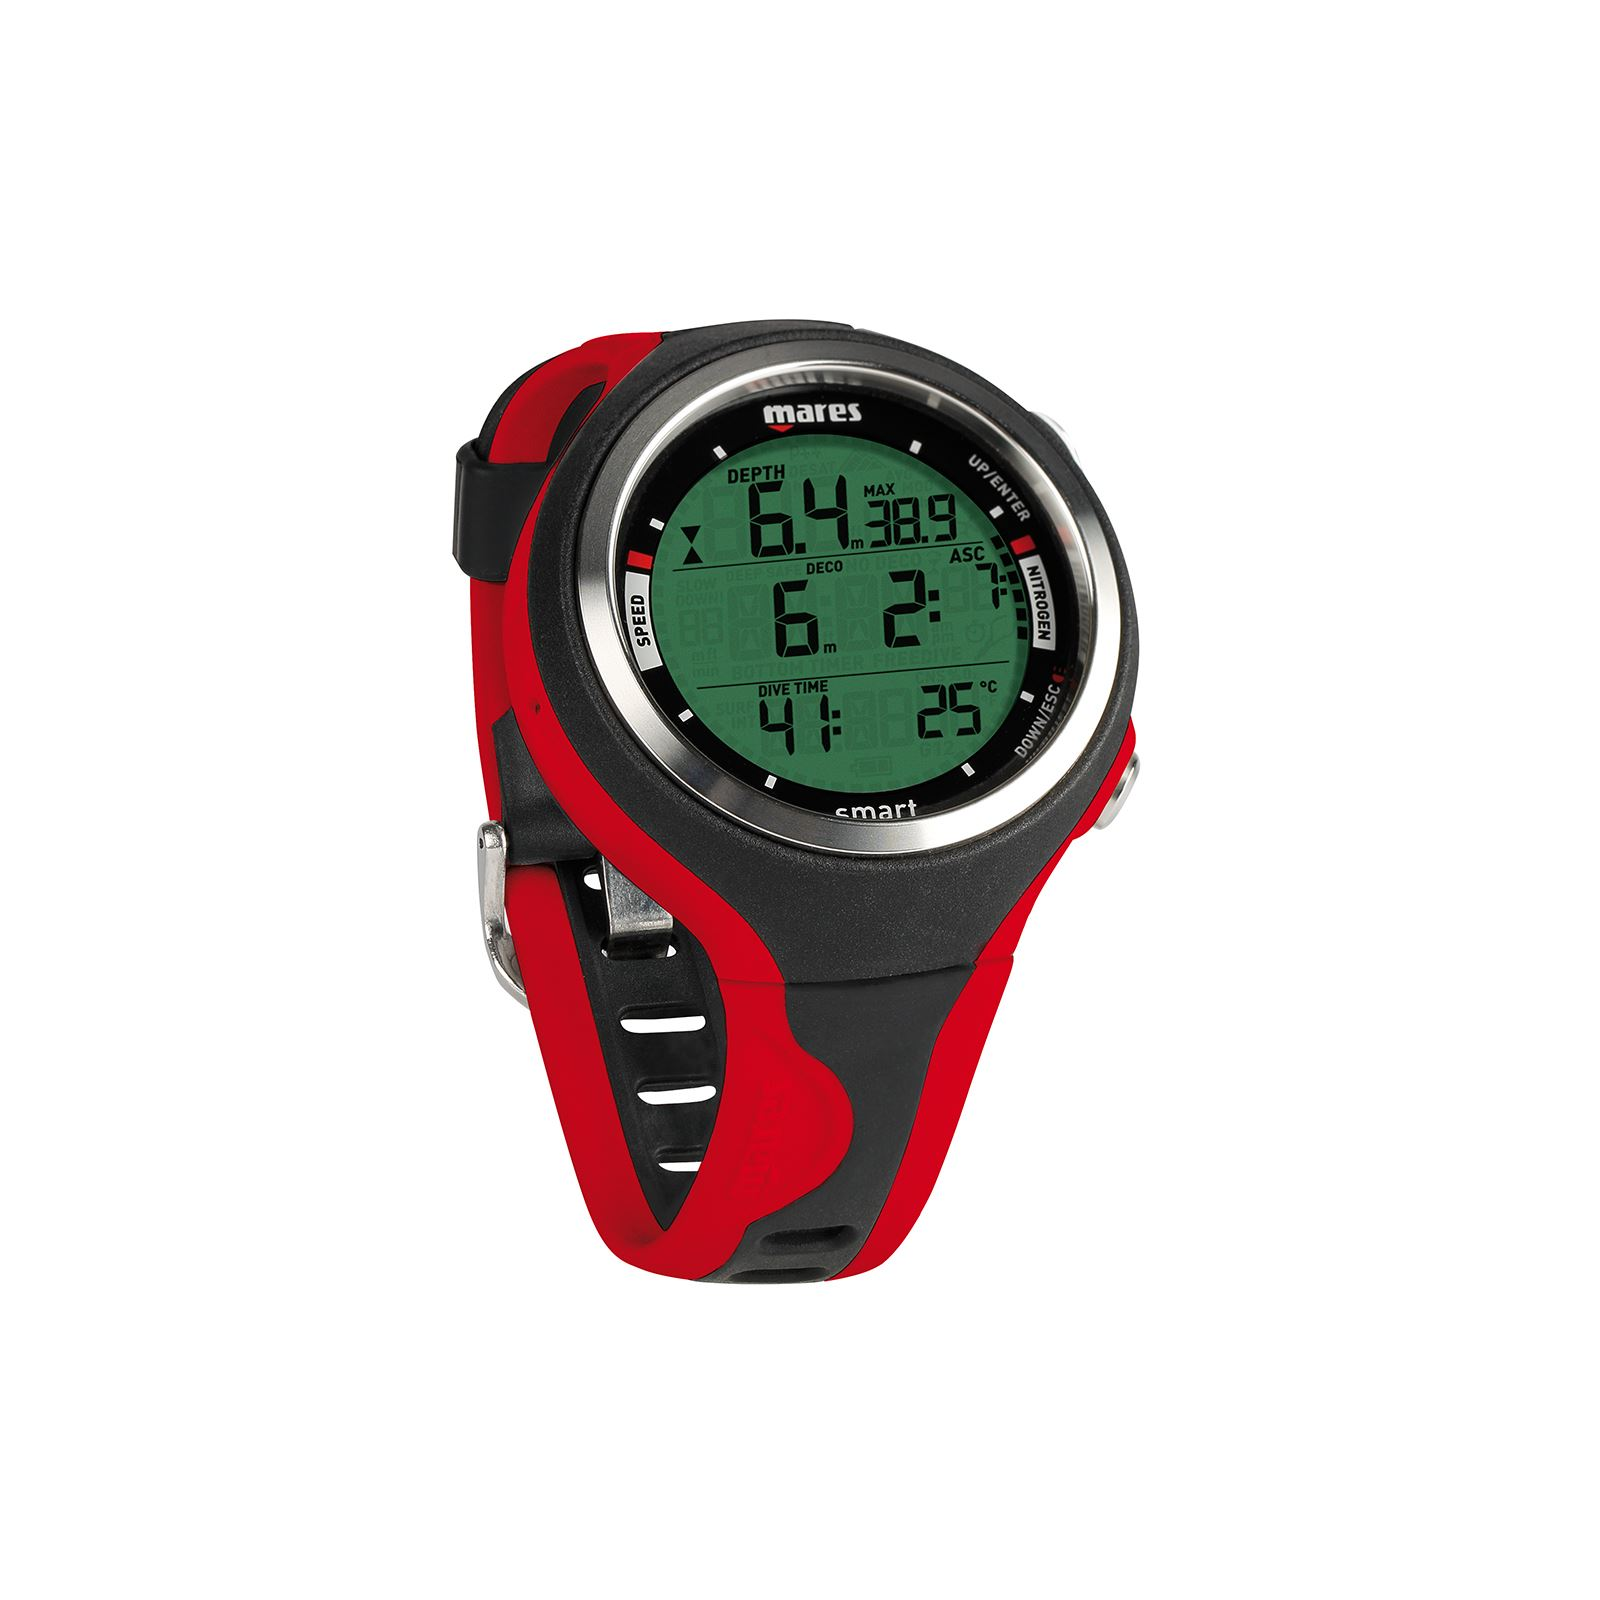 Mares smart scuba dive watch style computer multi gas free - Mares dive watch ...